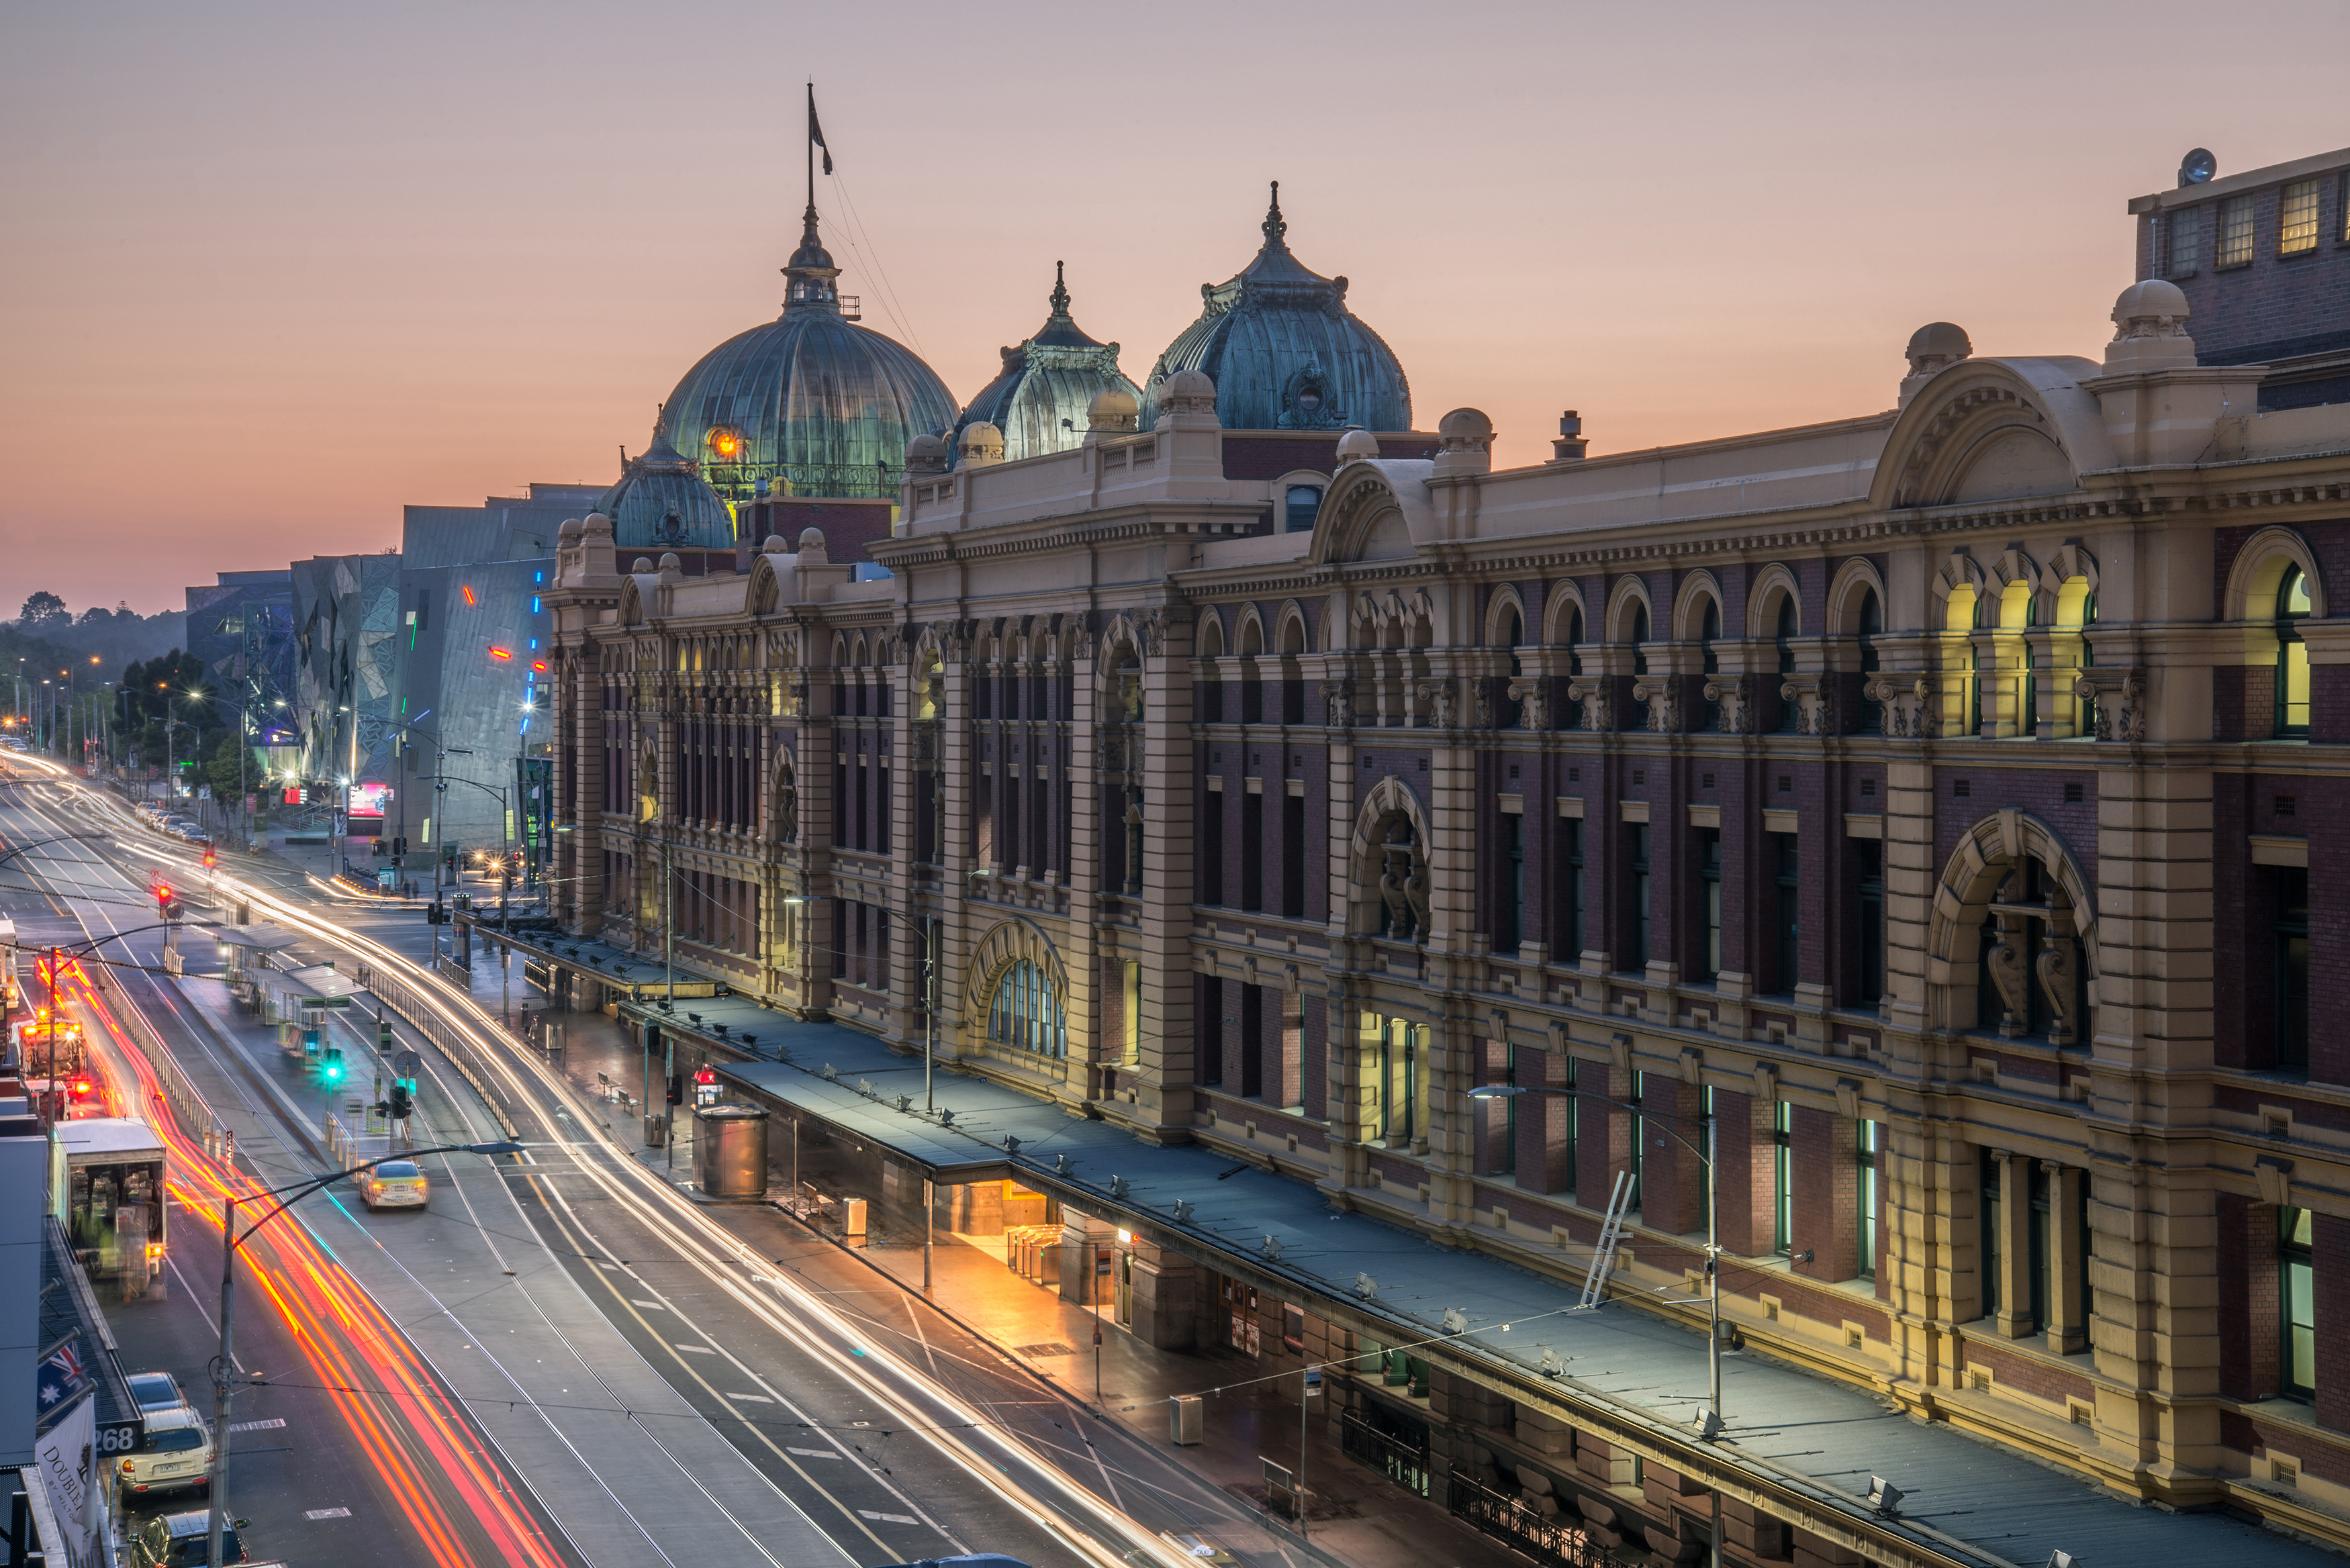 Slide 17 of 29: Melbourne, AUSTRALIA - OCTOBER 22 2015: Flinders street station the iconic landmark of Melbourne in the morning time, Australia.; Shutterstock ID 322885631; Purchase Order: -